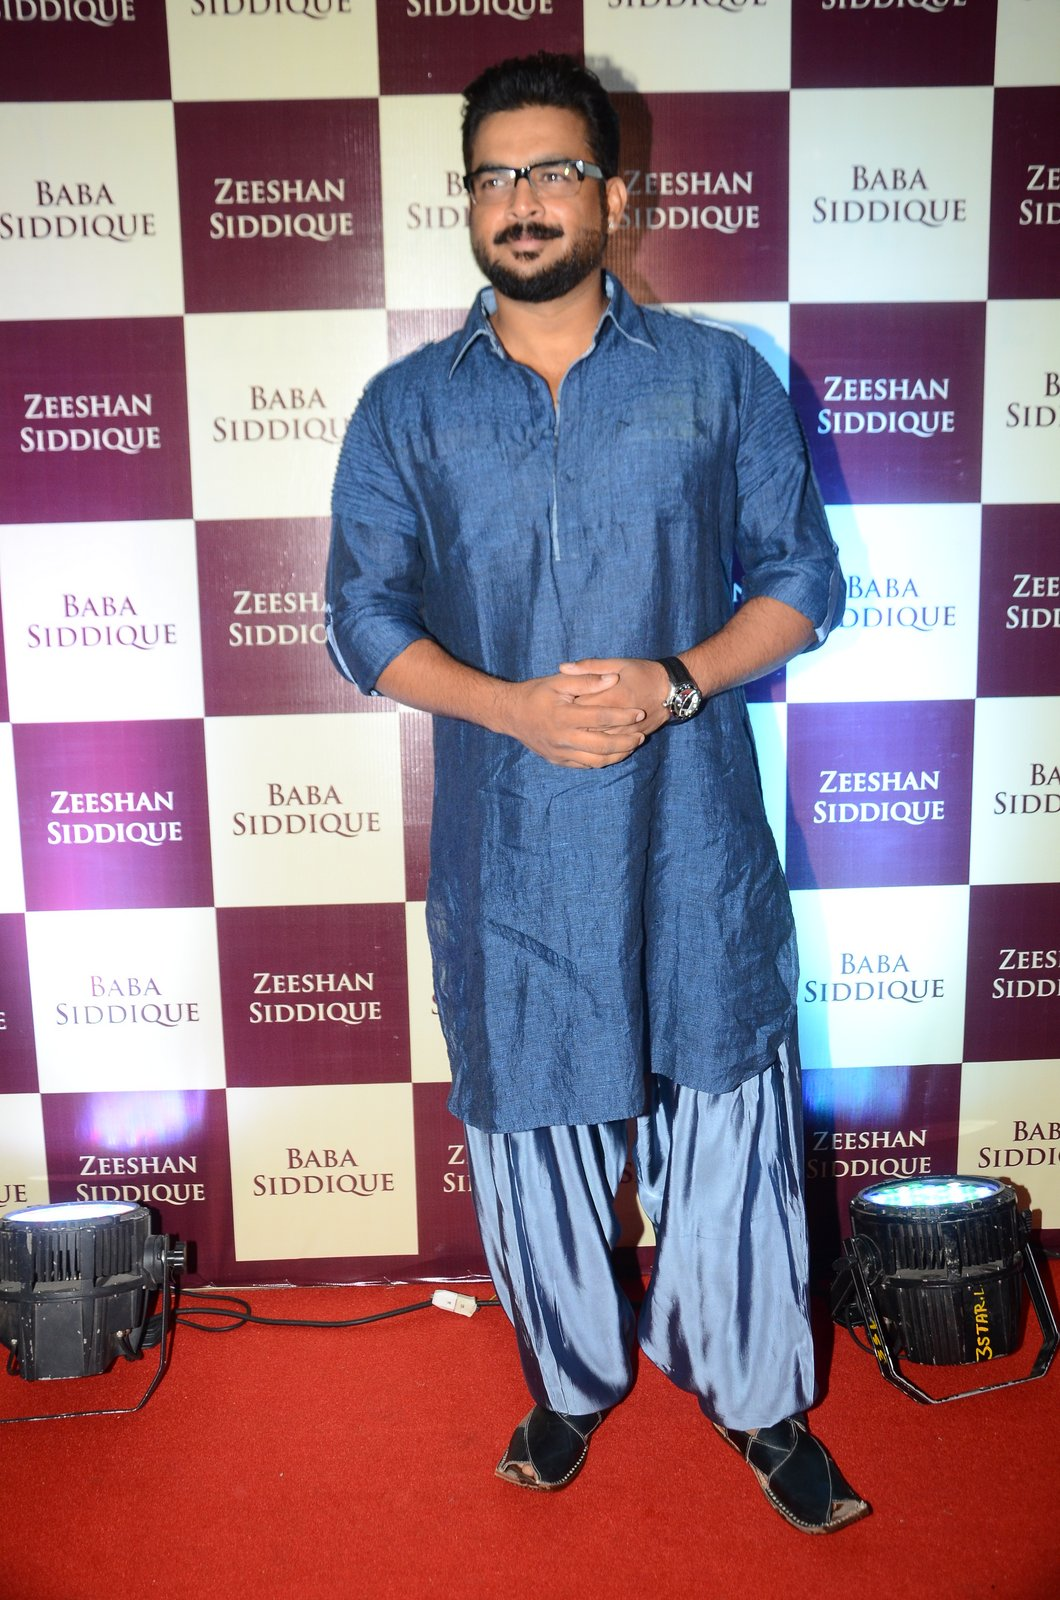 Madhavan at Baba Siddique and Zeeshan Siddique's Iftaari celebration on 19th June 2016